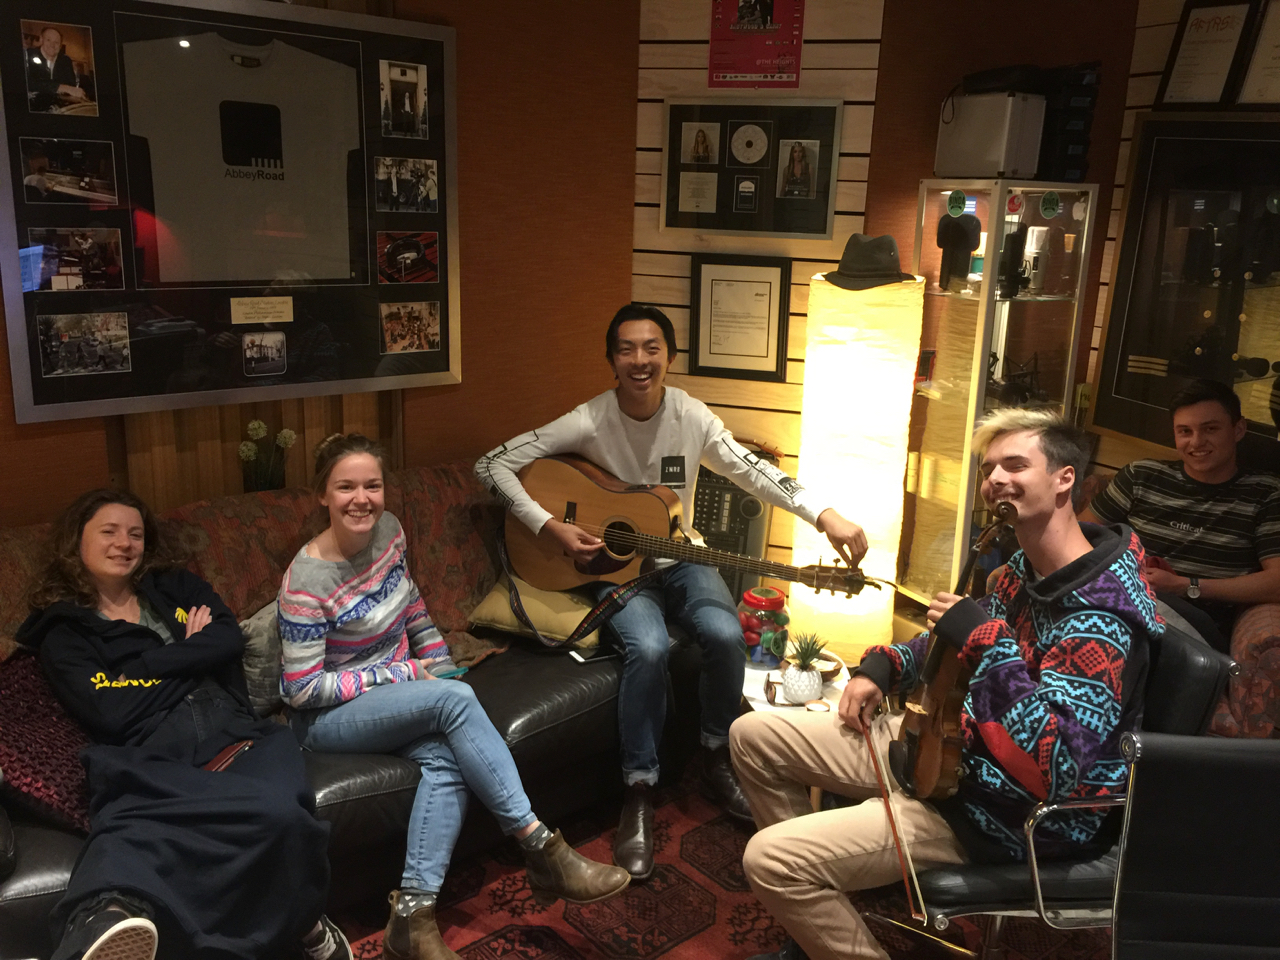 Oct 2018 - We welcomed Jerry Yu, Vince Umbers and Guillaume Frere to the studio for the October long weekend. Check out their fantastic version of Noah Gundersen's 'Cigarettes' in the link above!